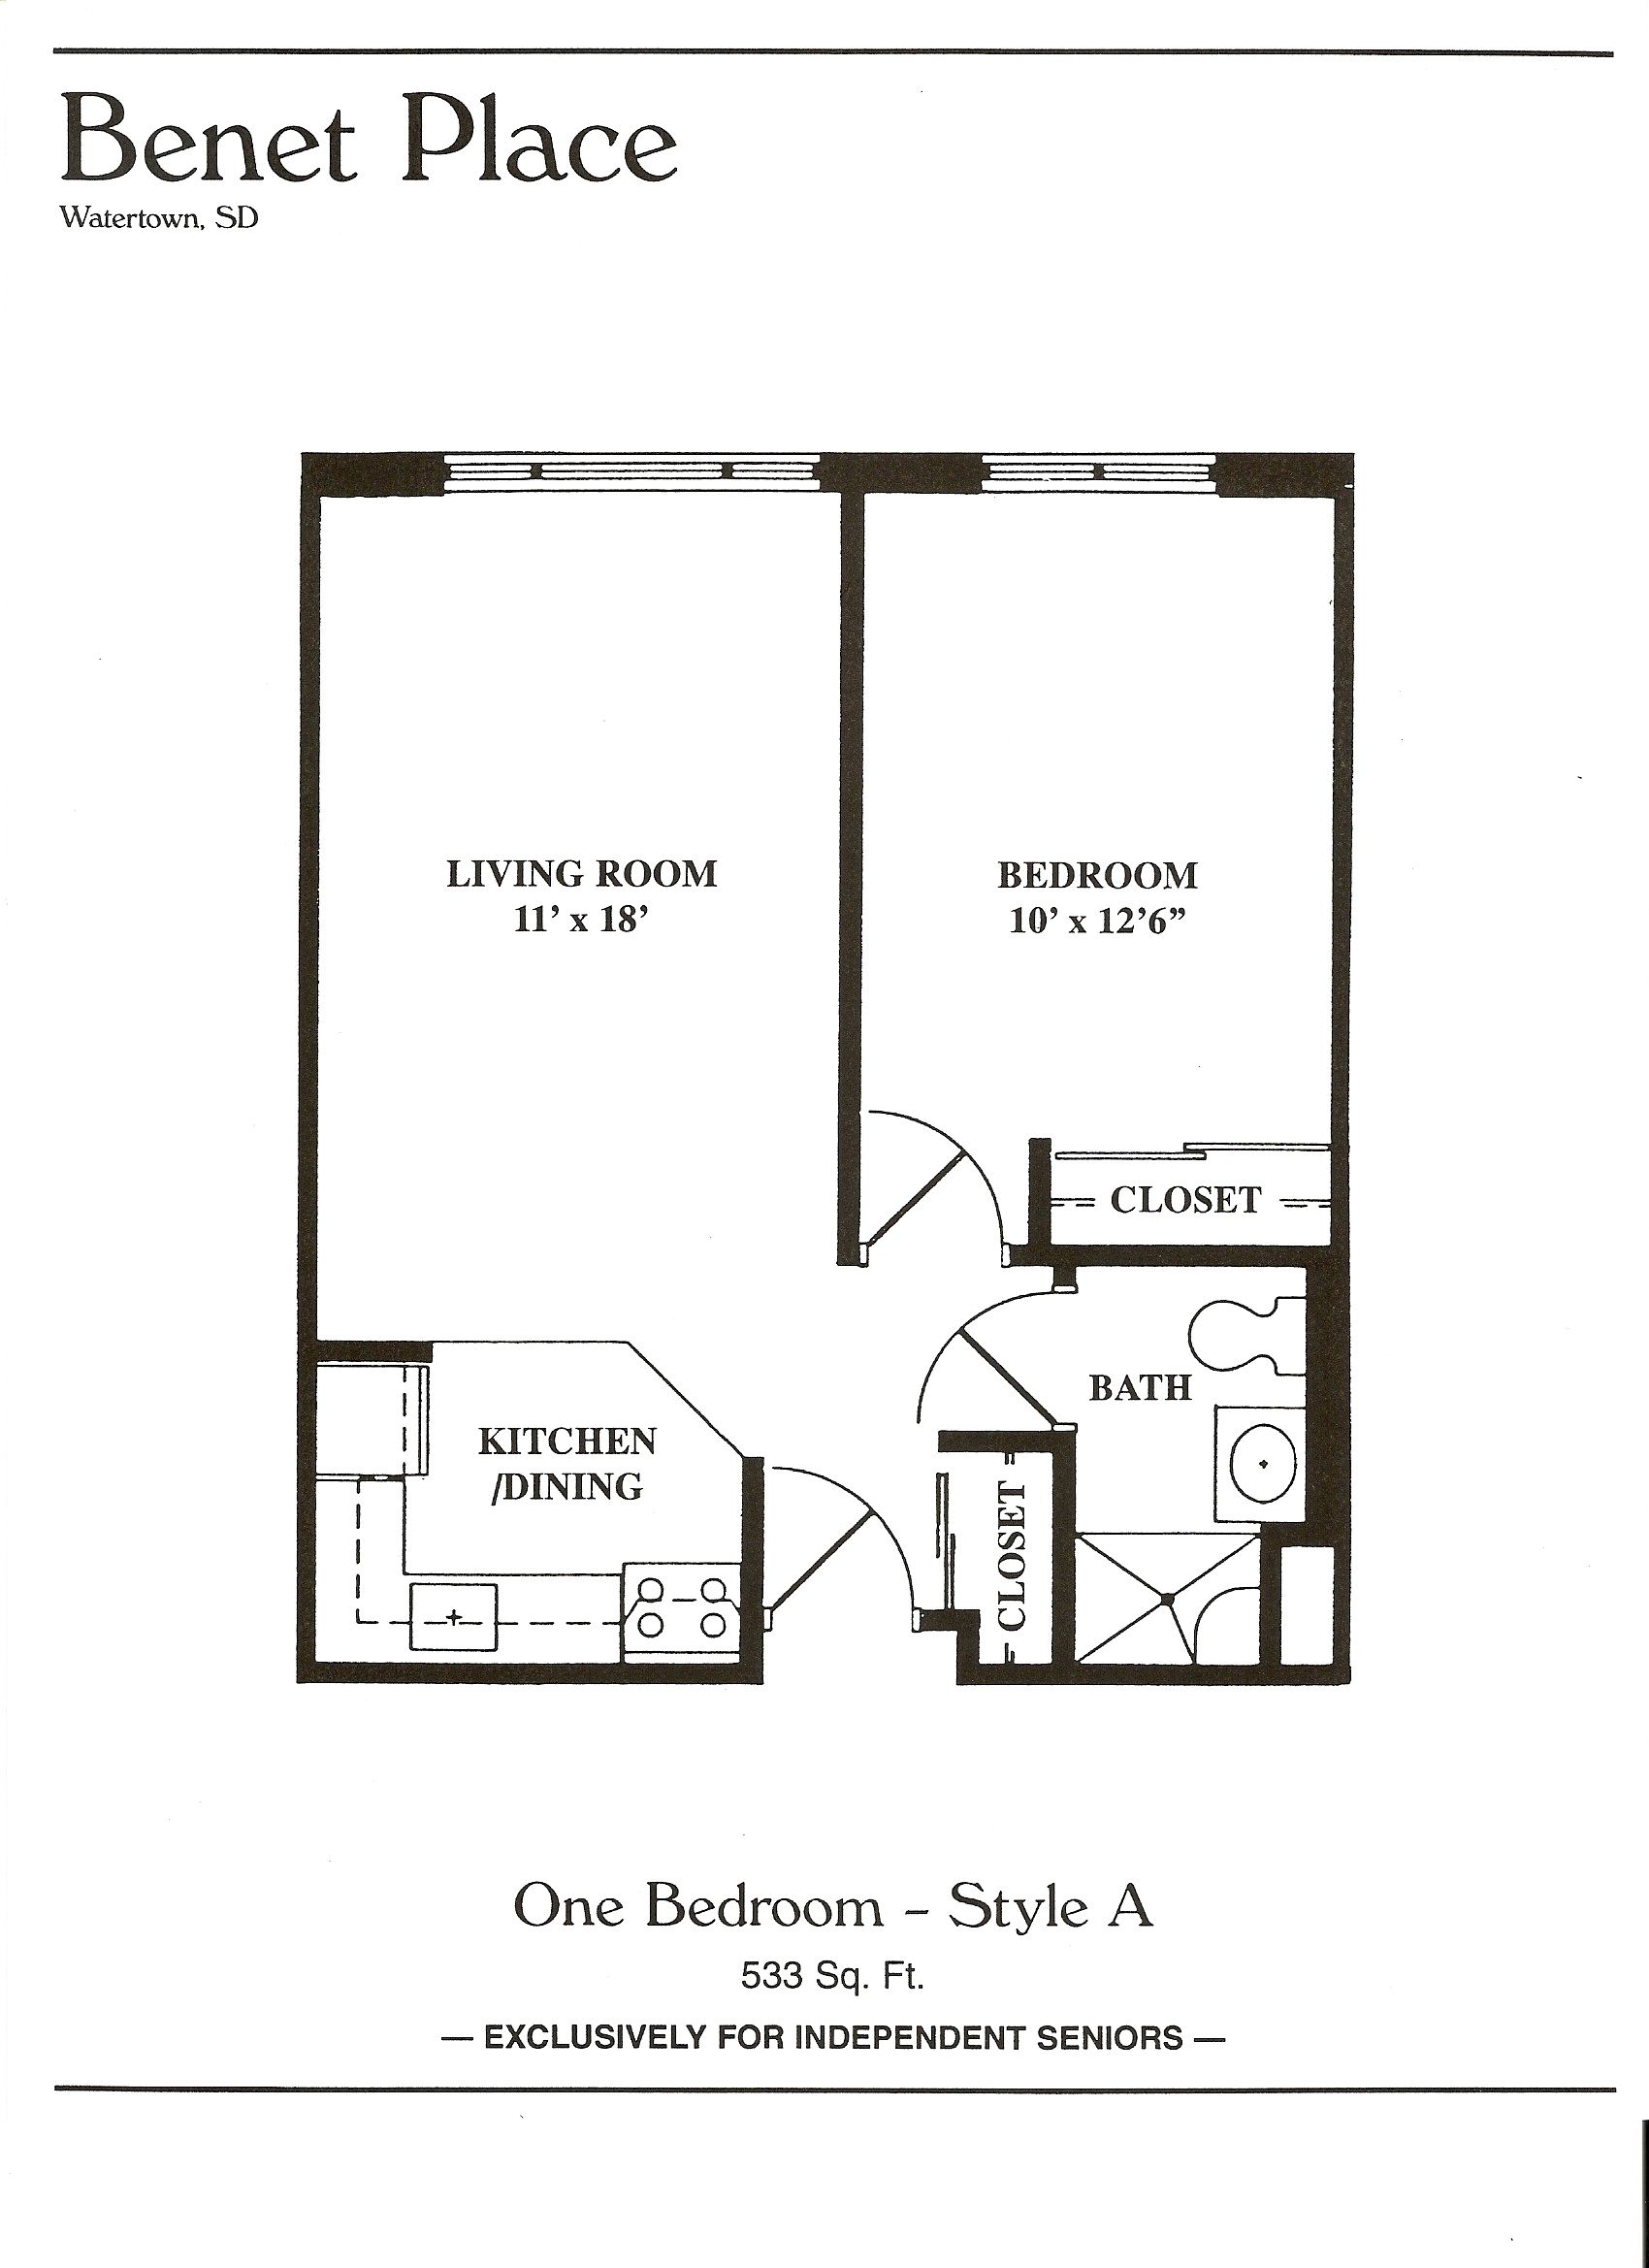 Great Photo Of 1 Bedroom Apartment Floor Plan Apartment Floor Plans 1 Bedroom House Plans 1 Bedroom Apartment